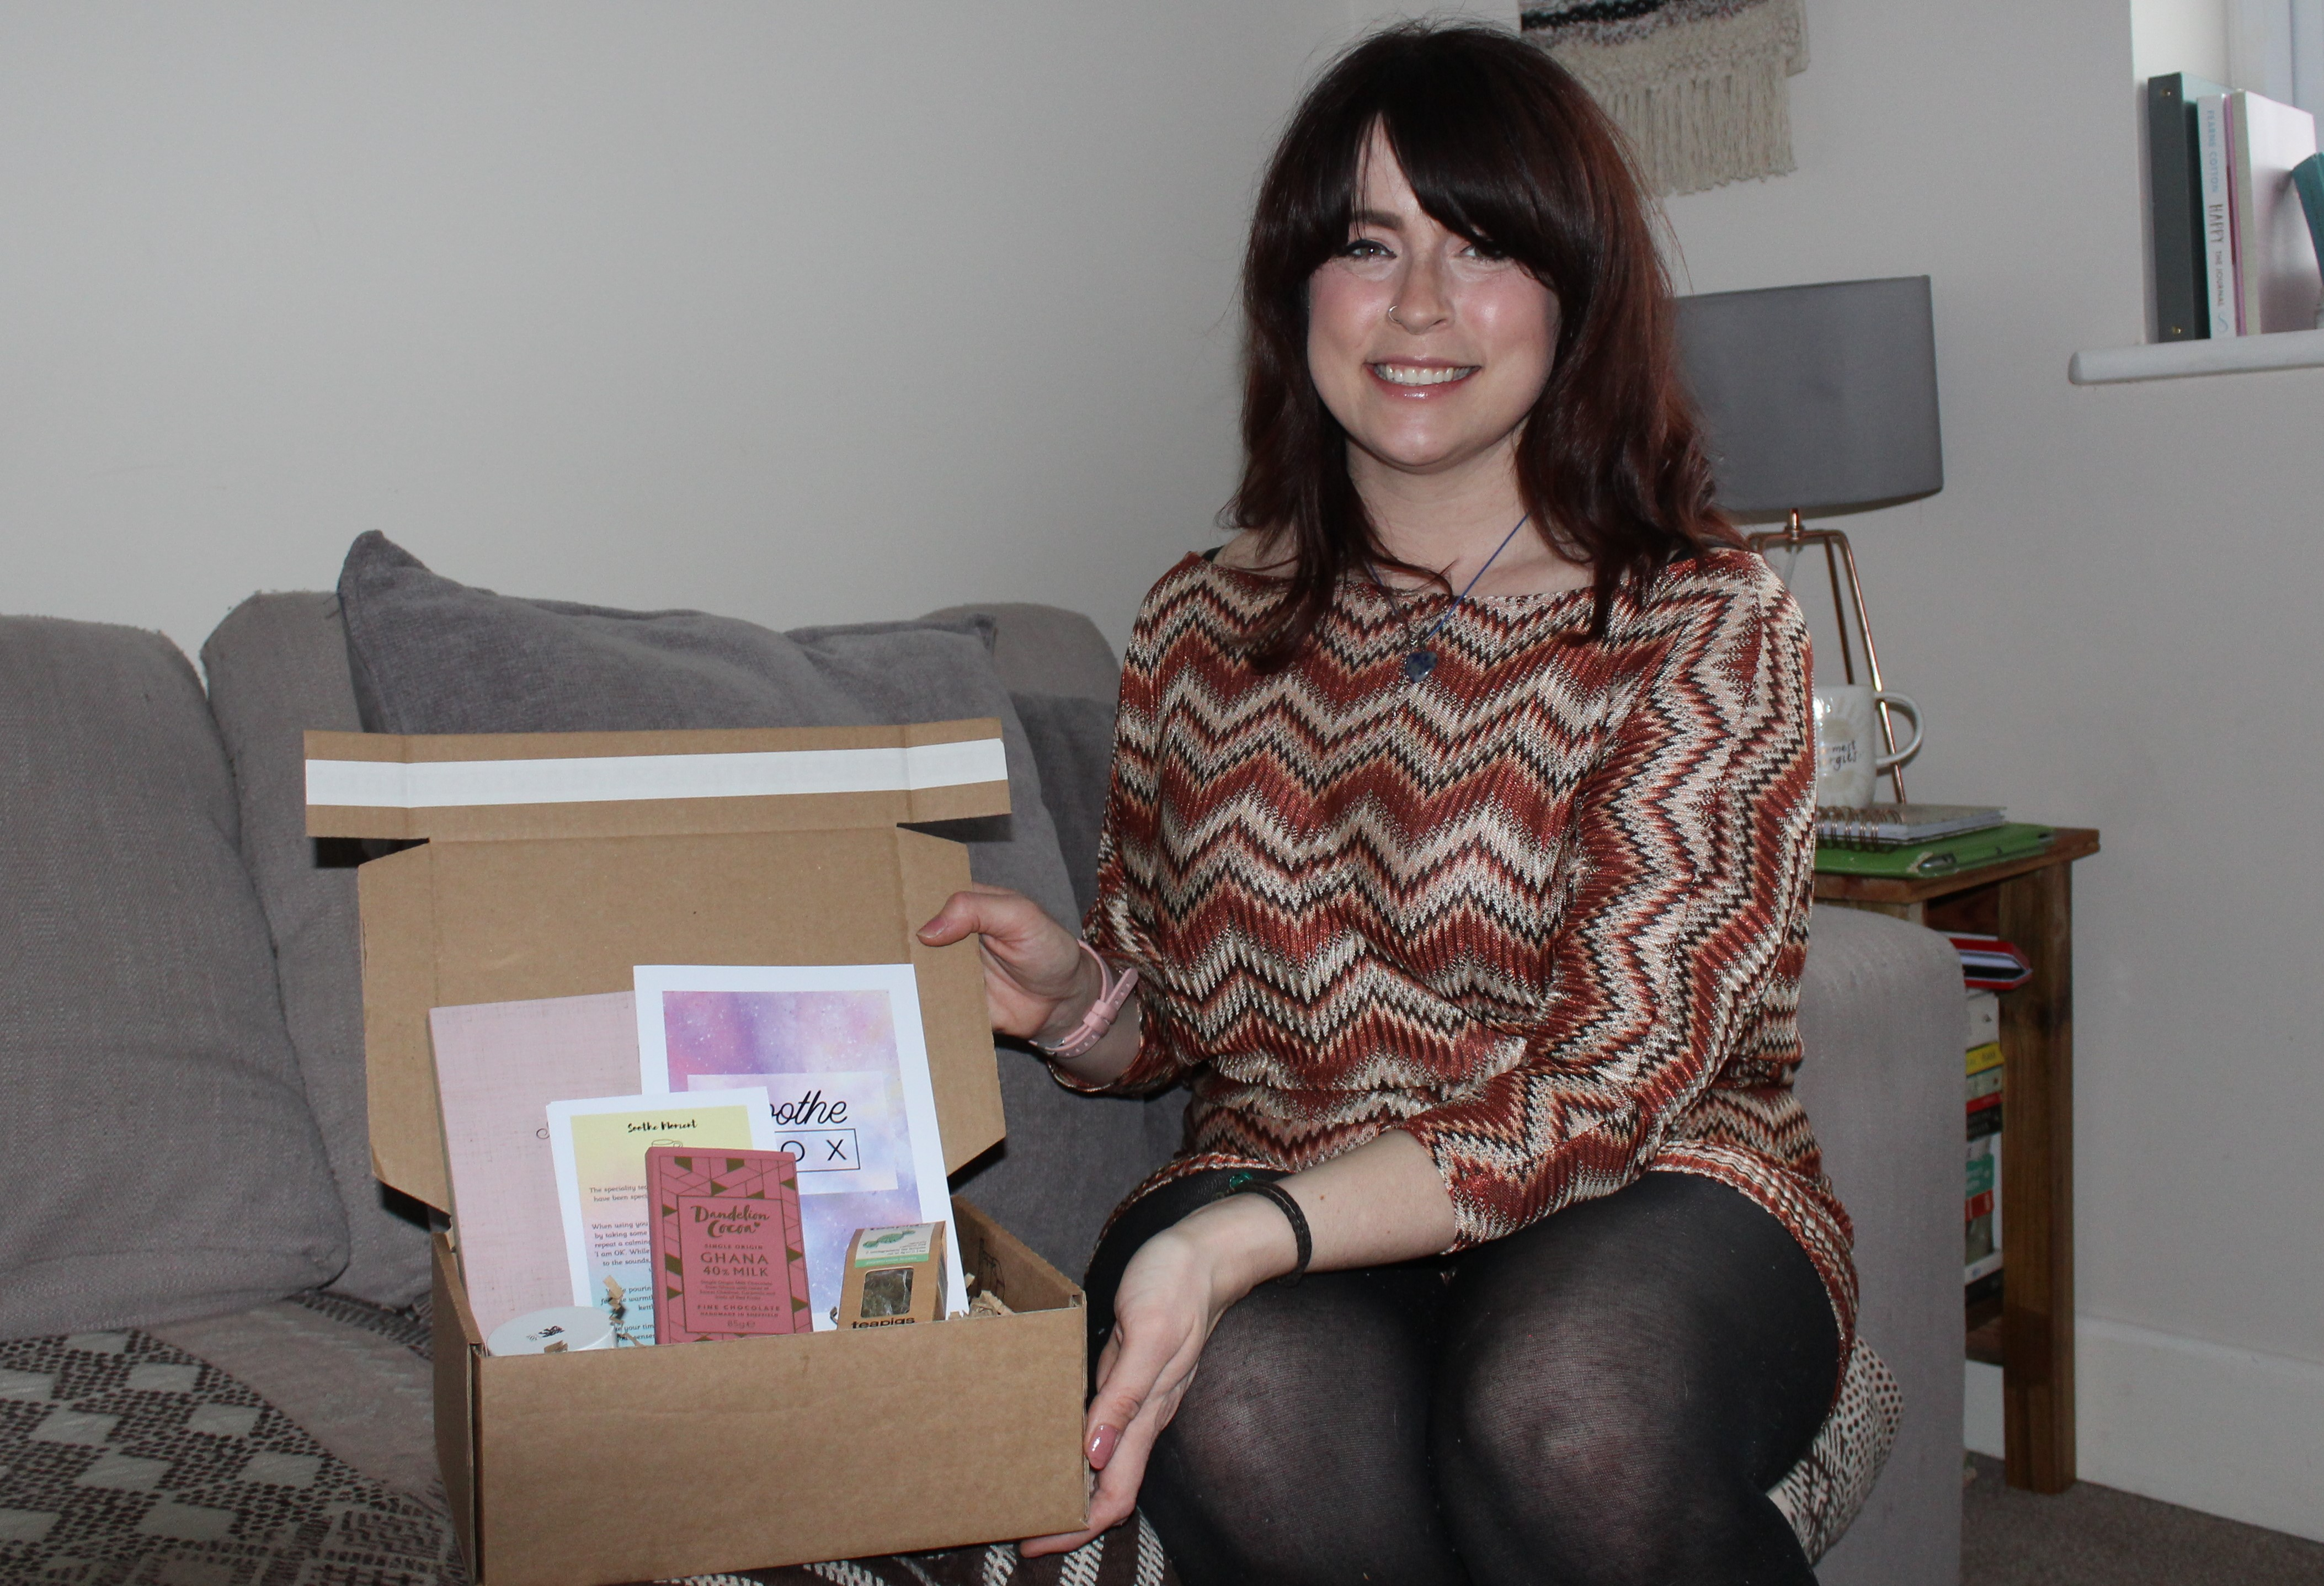 Natasha_Evans_with_her_Soothe_box.JPG